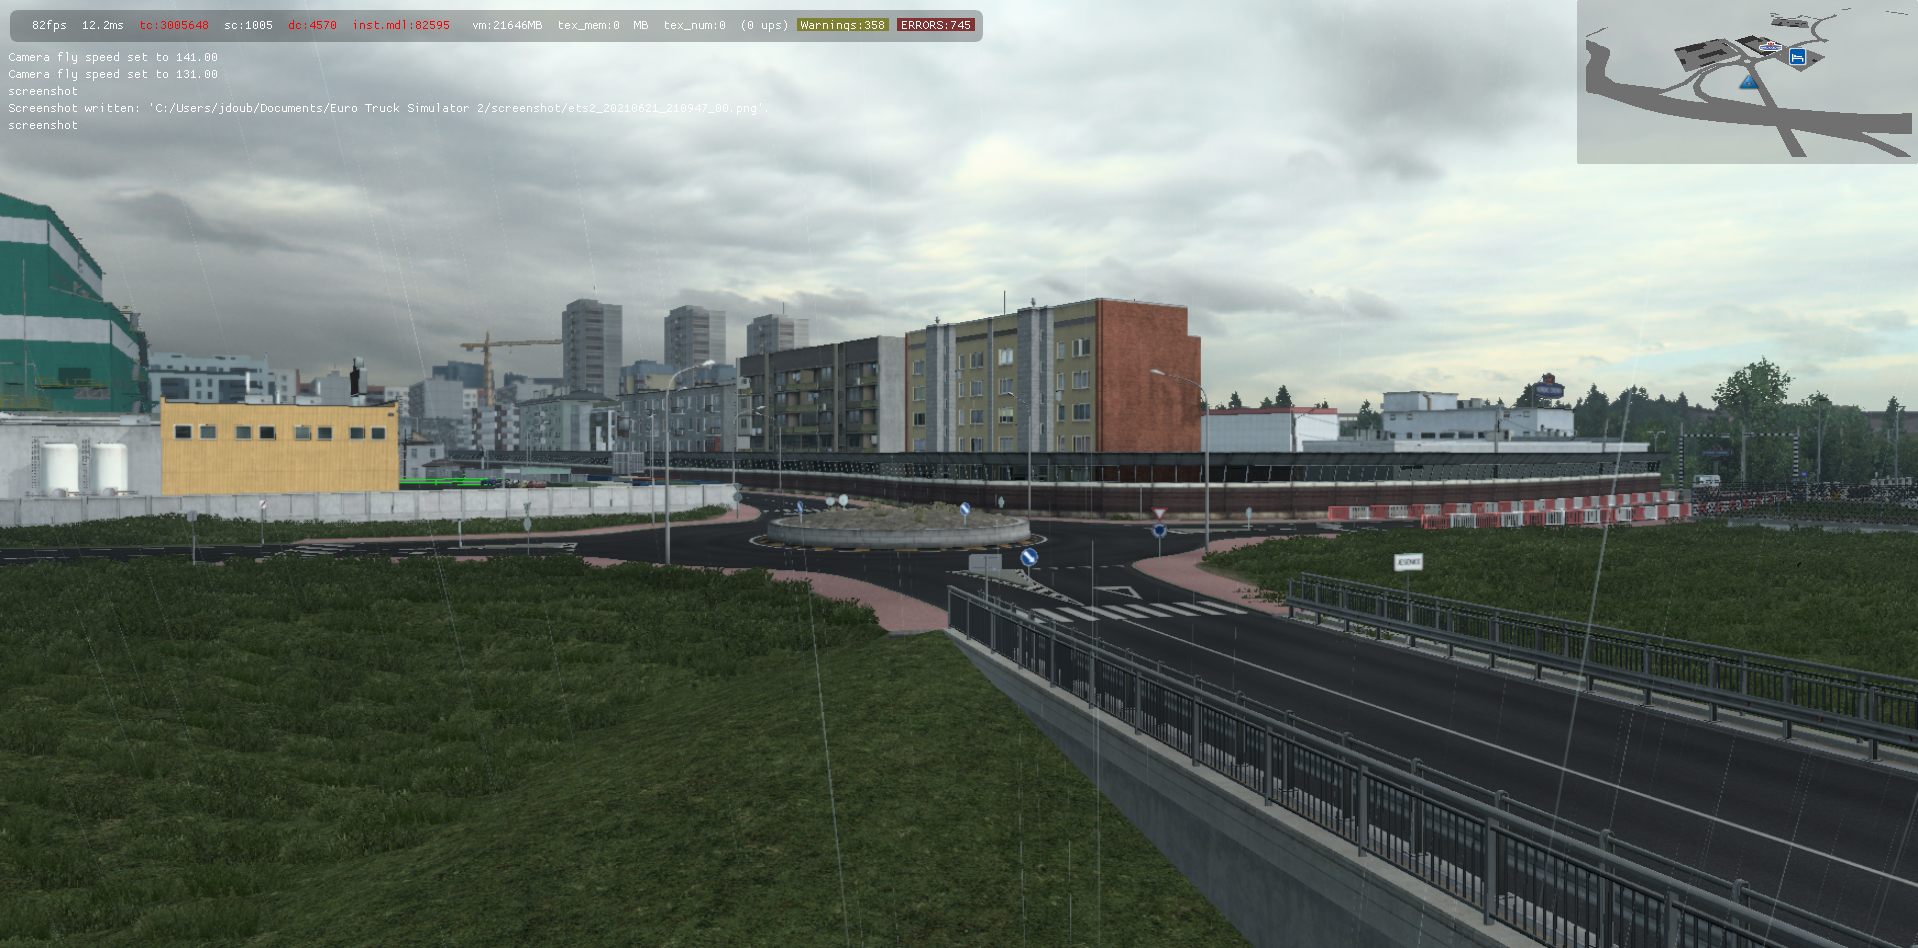 ets2_20210621_210951_00.png